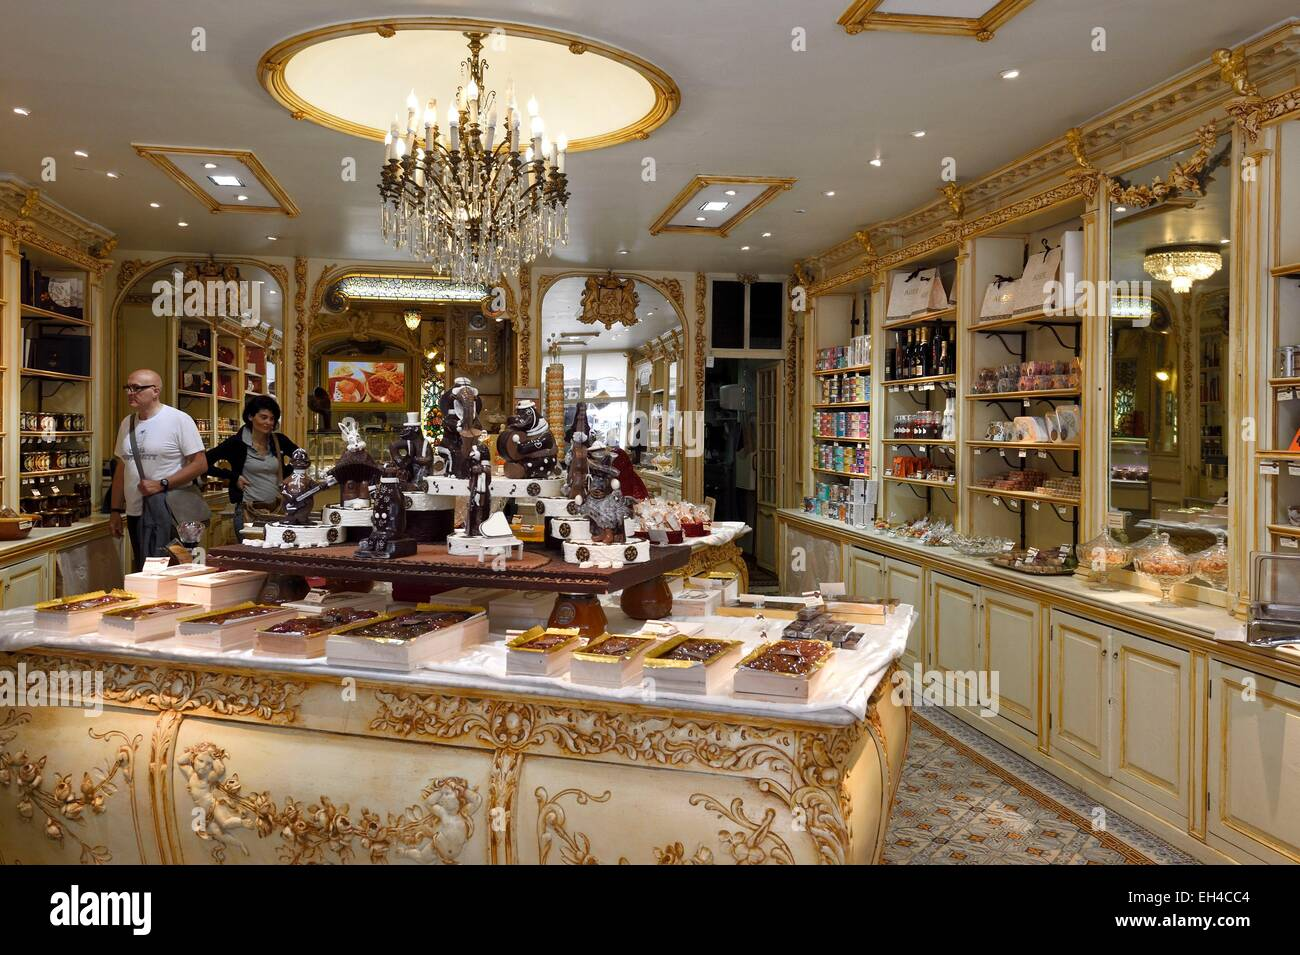 France, Alpes Maritimes, Nice, Maison Auer, chocolate and candy store - Stock Image